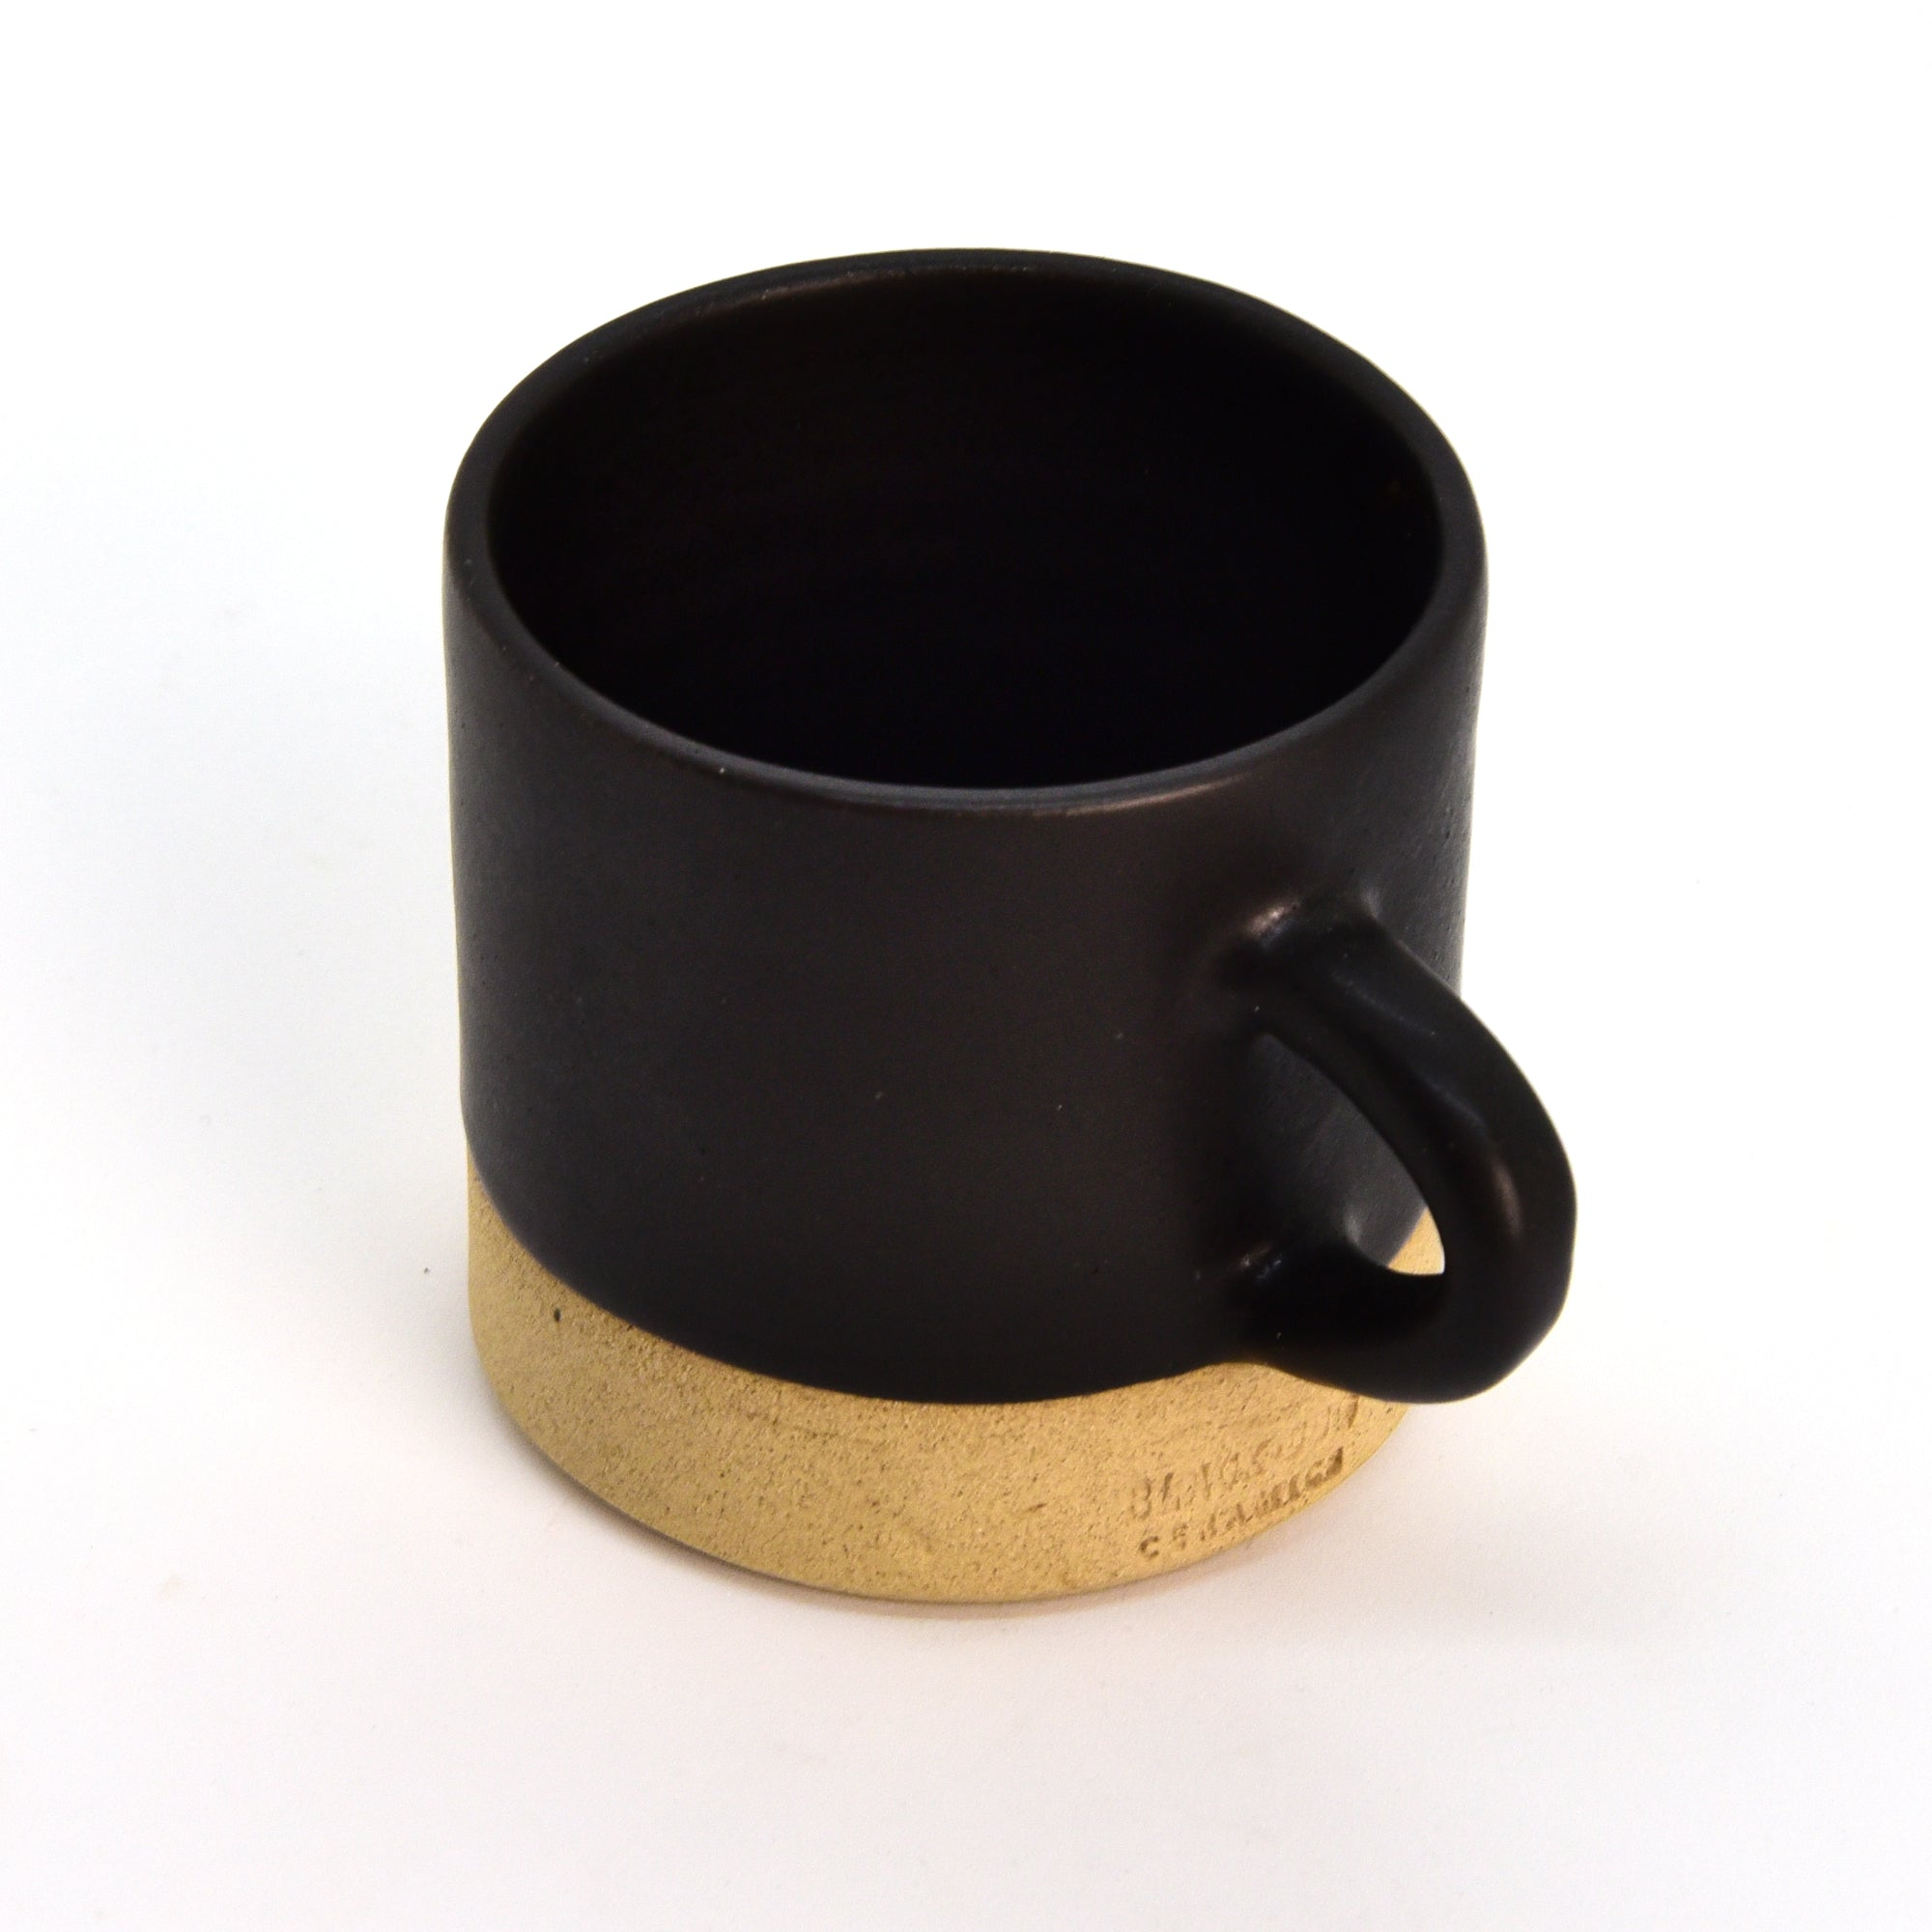 Ceramic Cup / Mug - Straight - Sand + Black